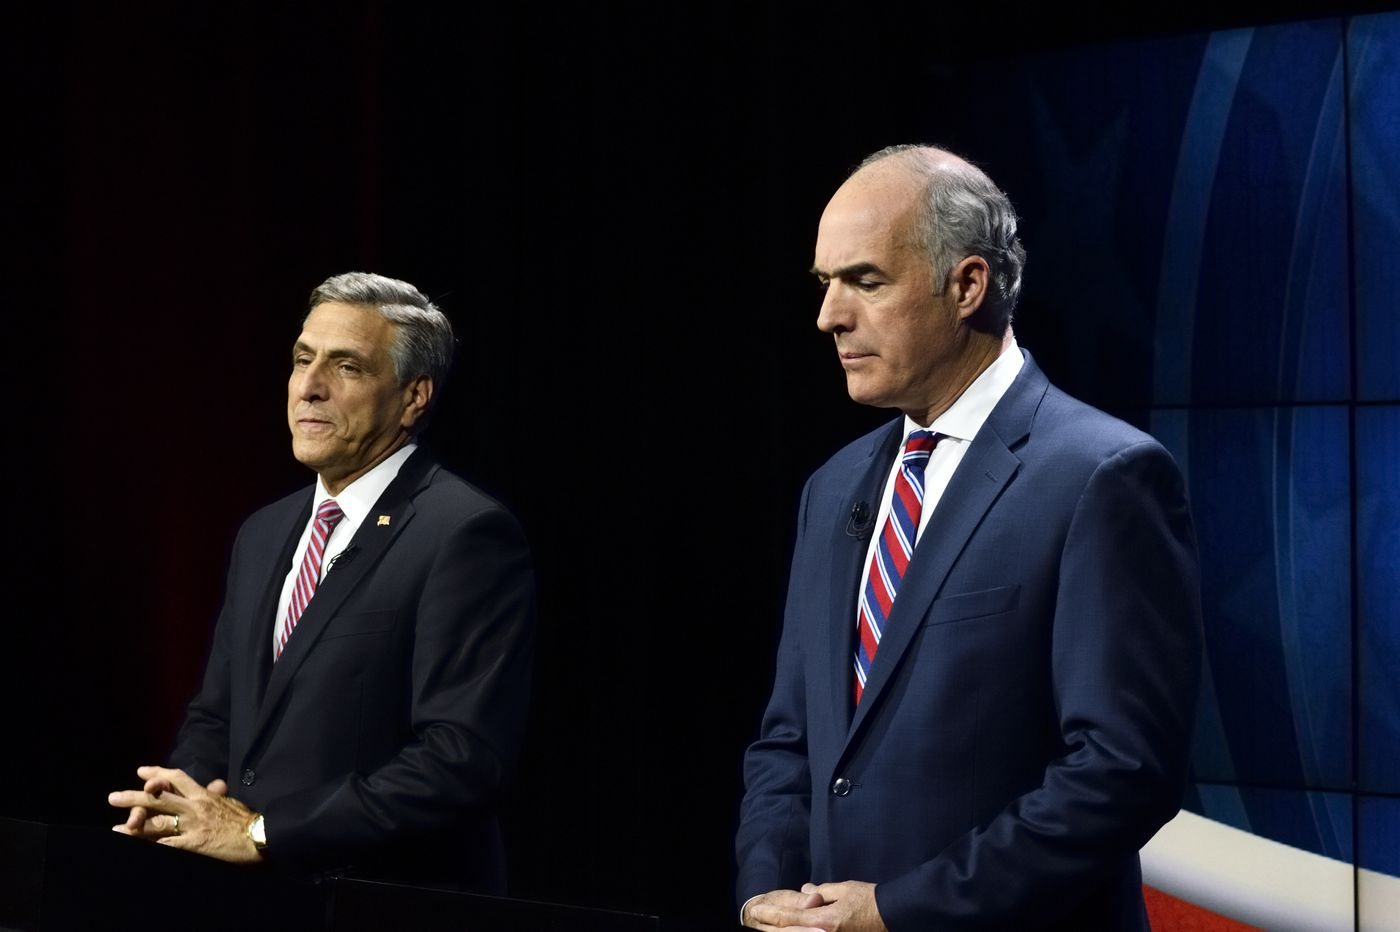 Casey and Barletta debate covers the economy, immigration, national security